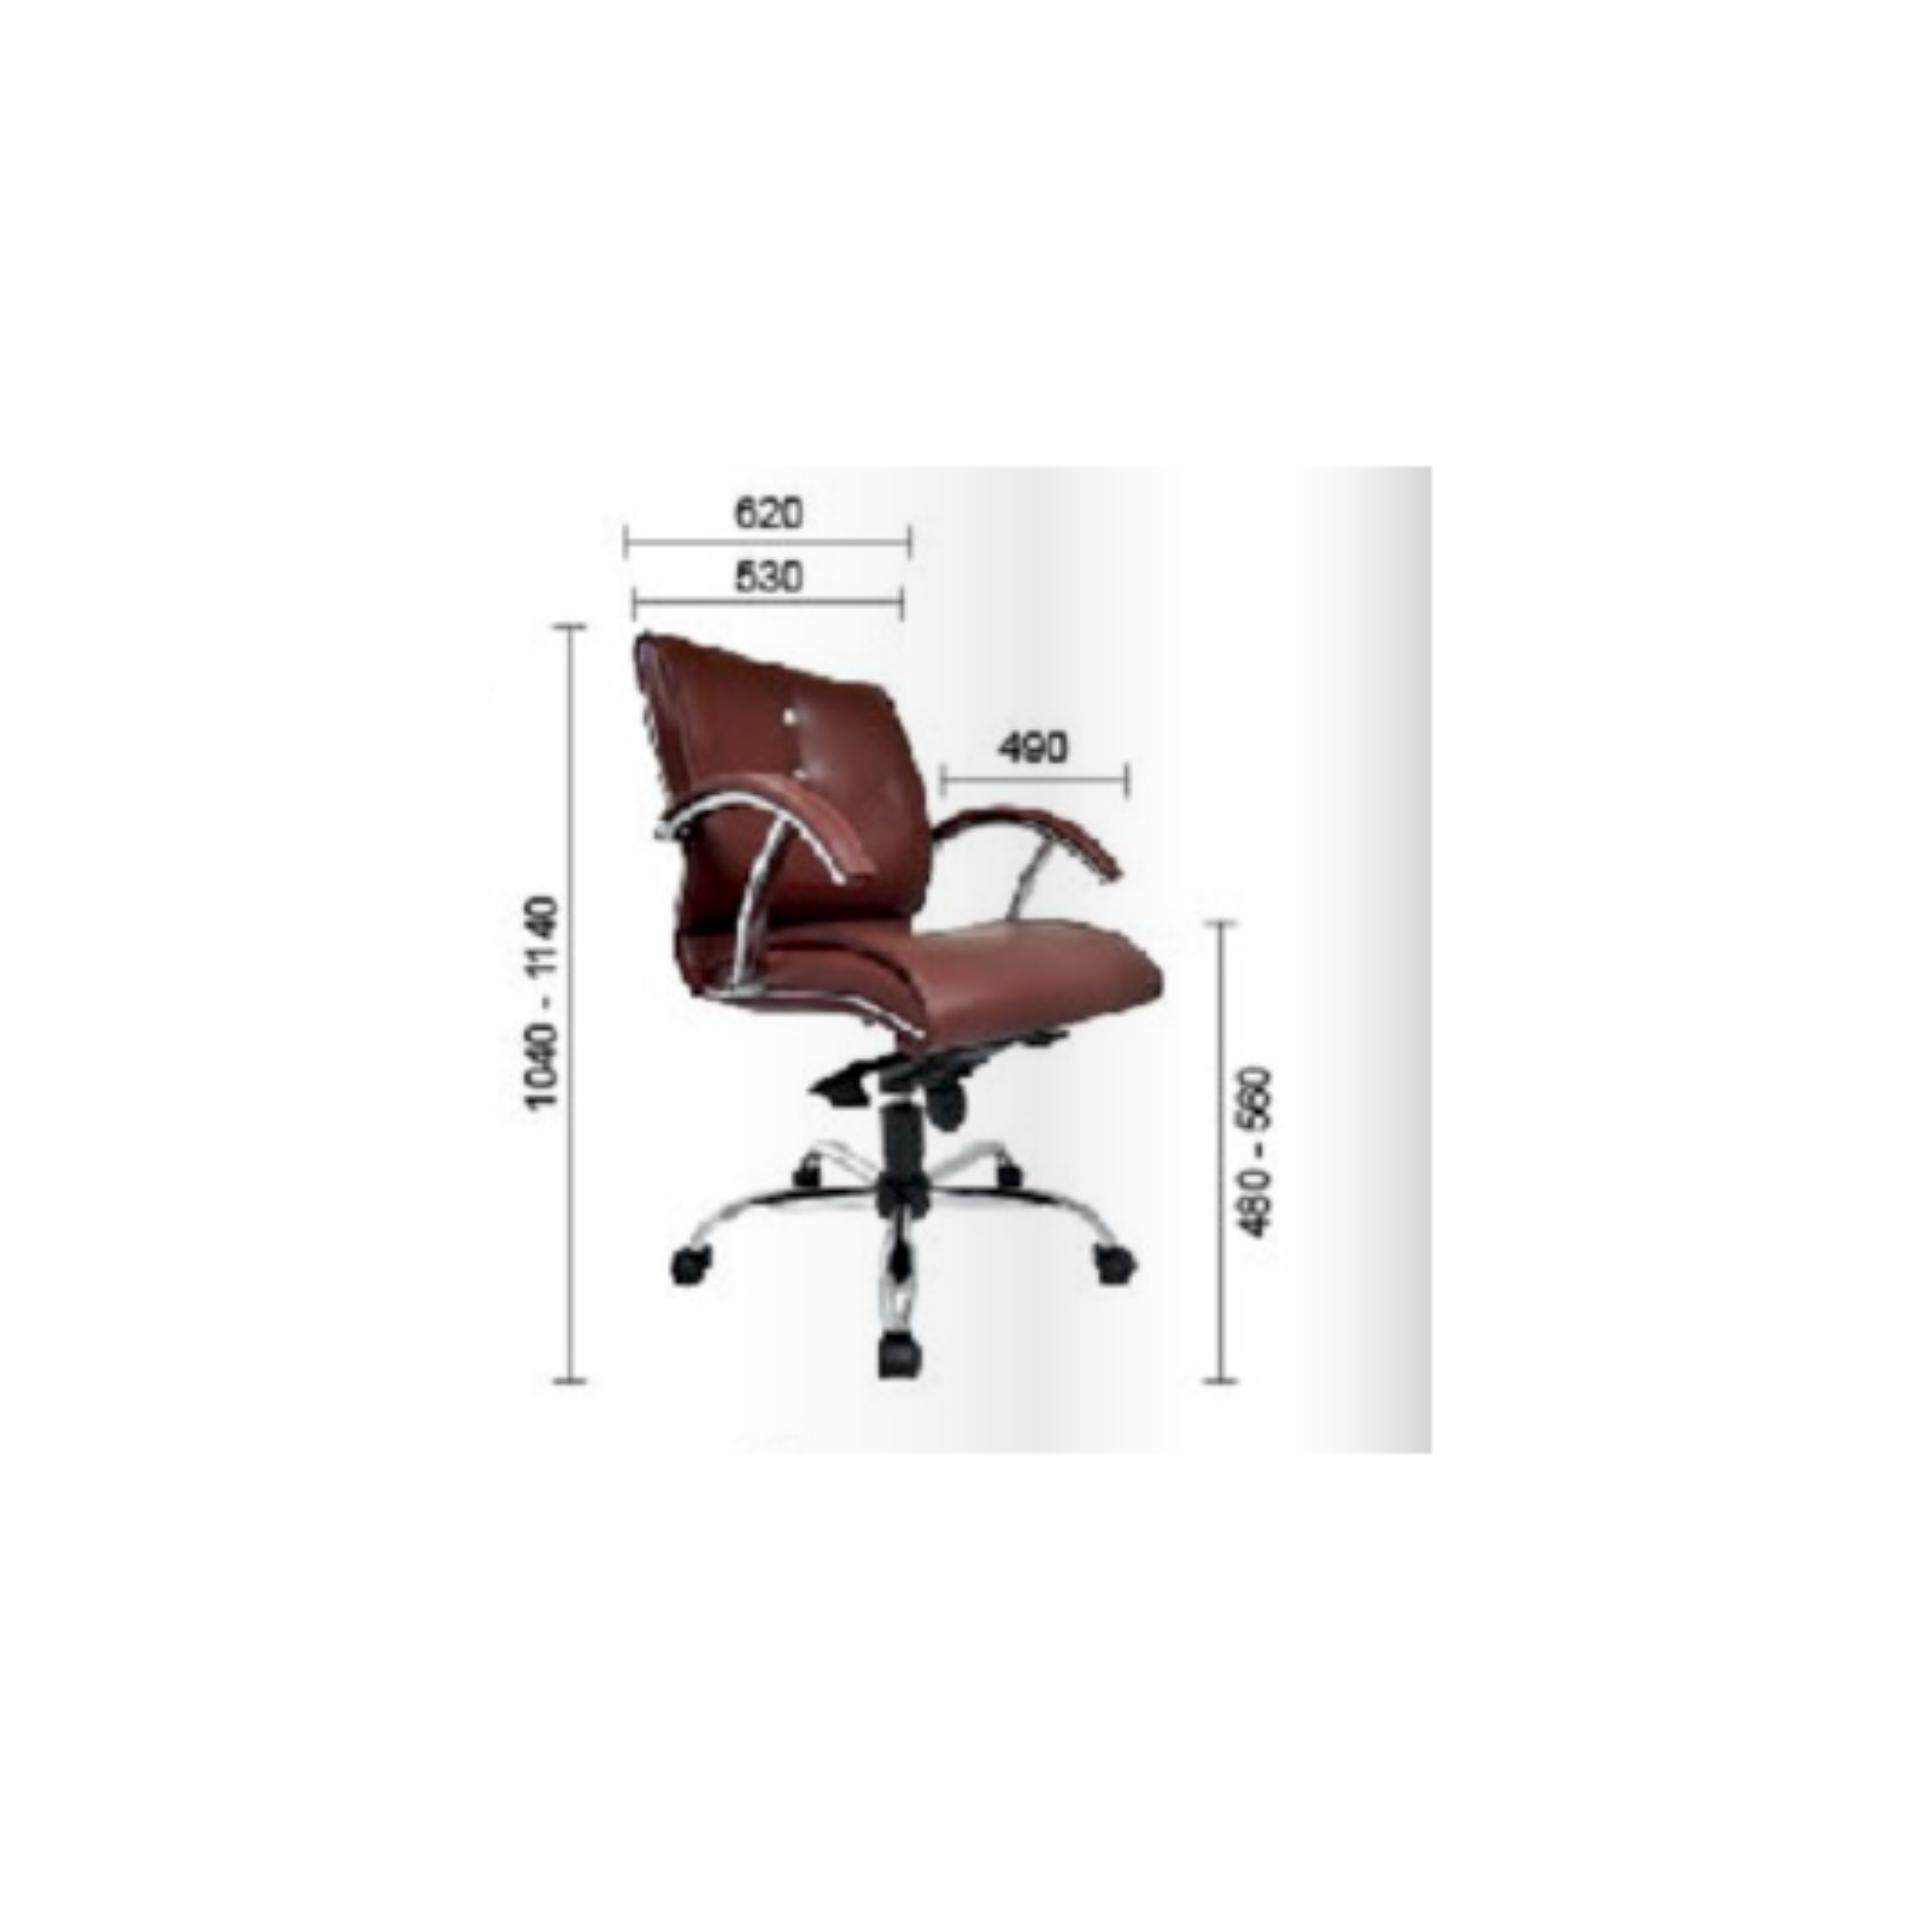 Deco Diamondia Office Chairs Leather Executive Low Back Recliner Computer Desk Swivel Chair ( Dark Maroon Color ) Pre-Order 2 Weeks